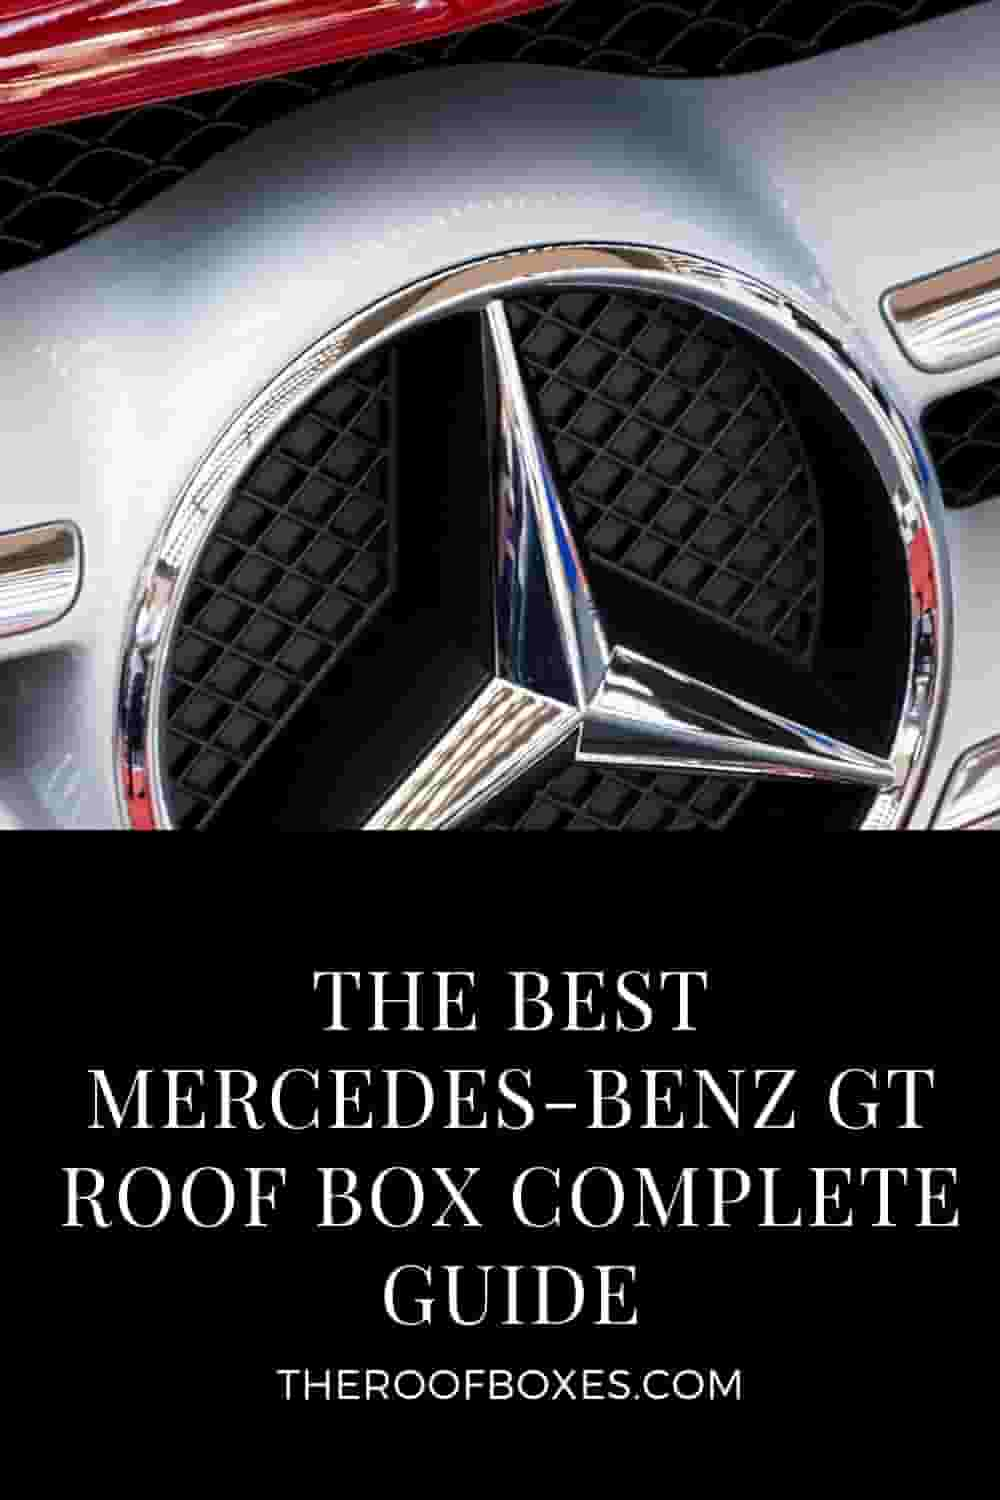 Mercedes-Benz GT Roof Box– Reviews and Comparison